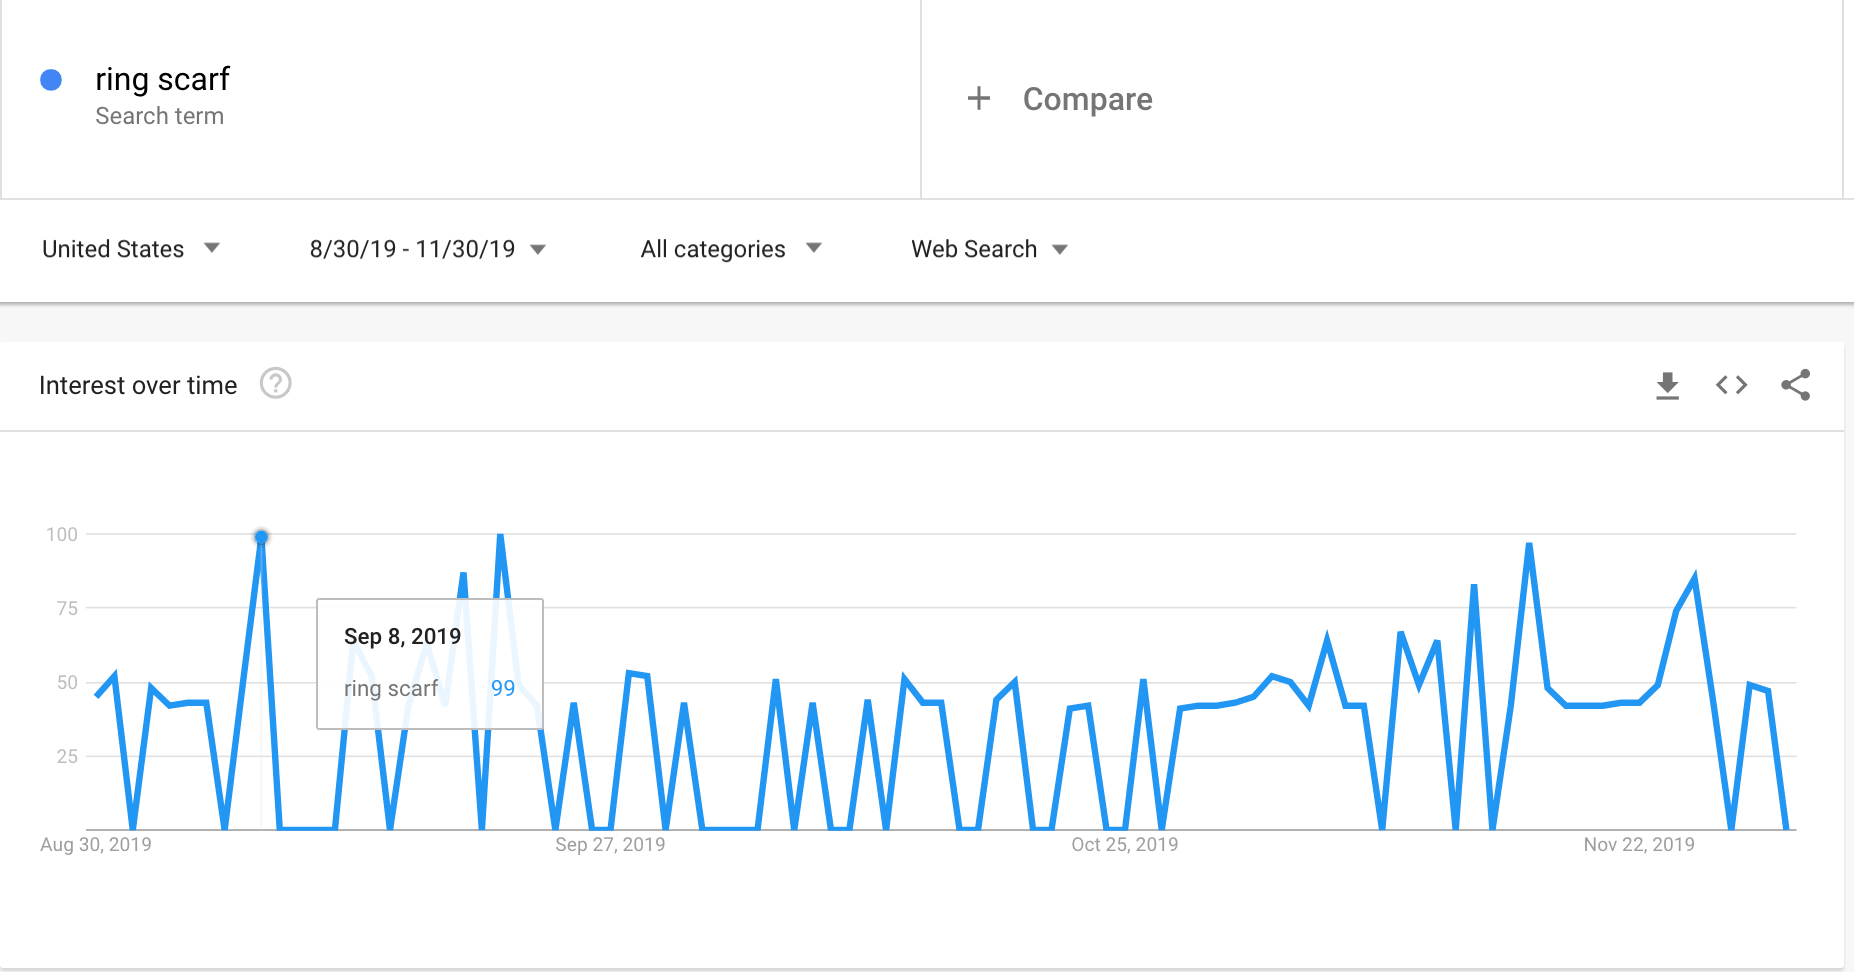 Google Trends graph showing the interest in ring scarves